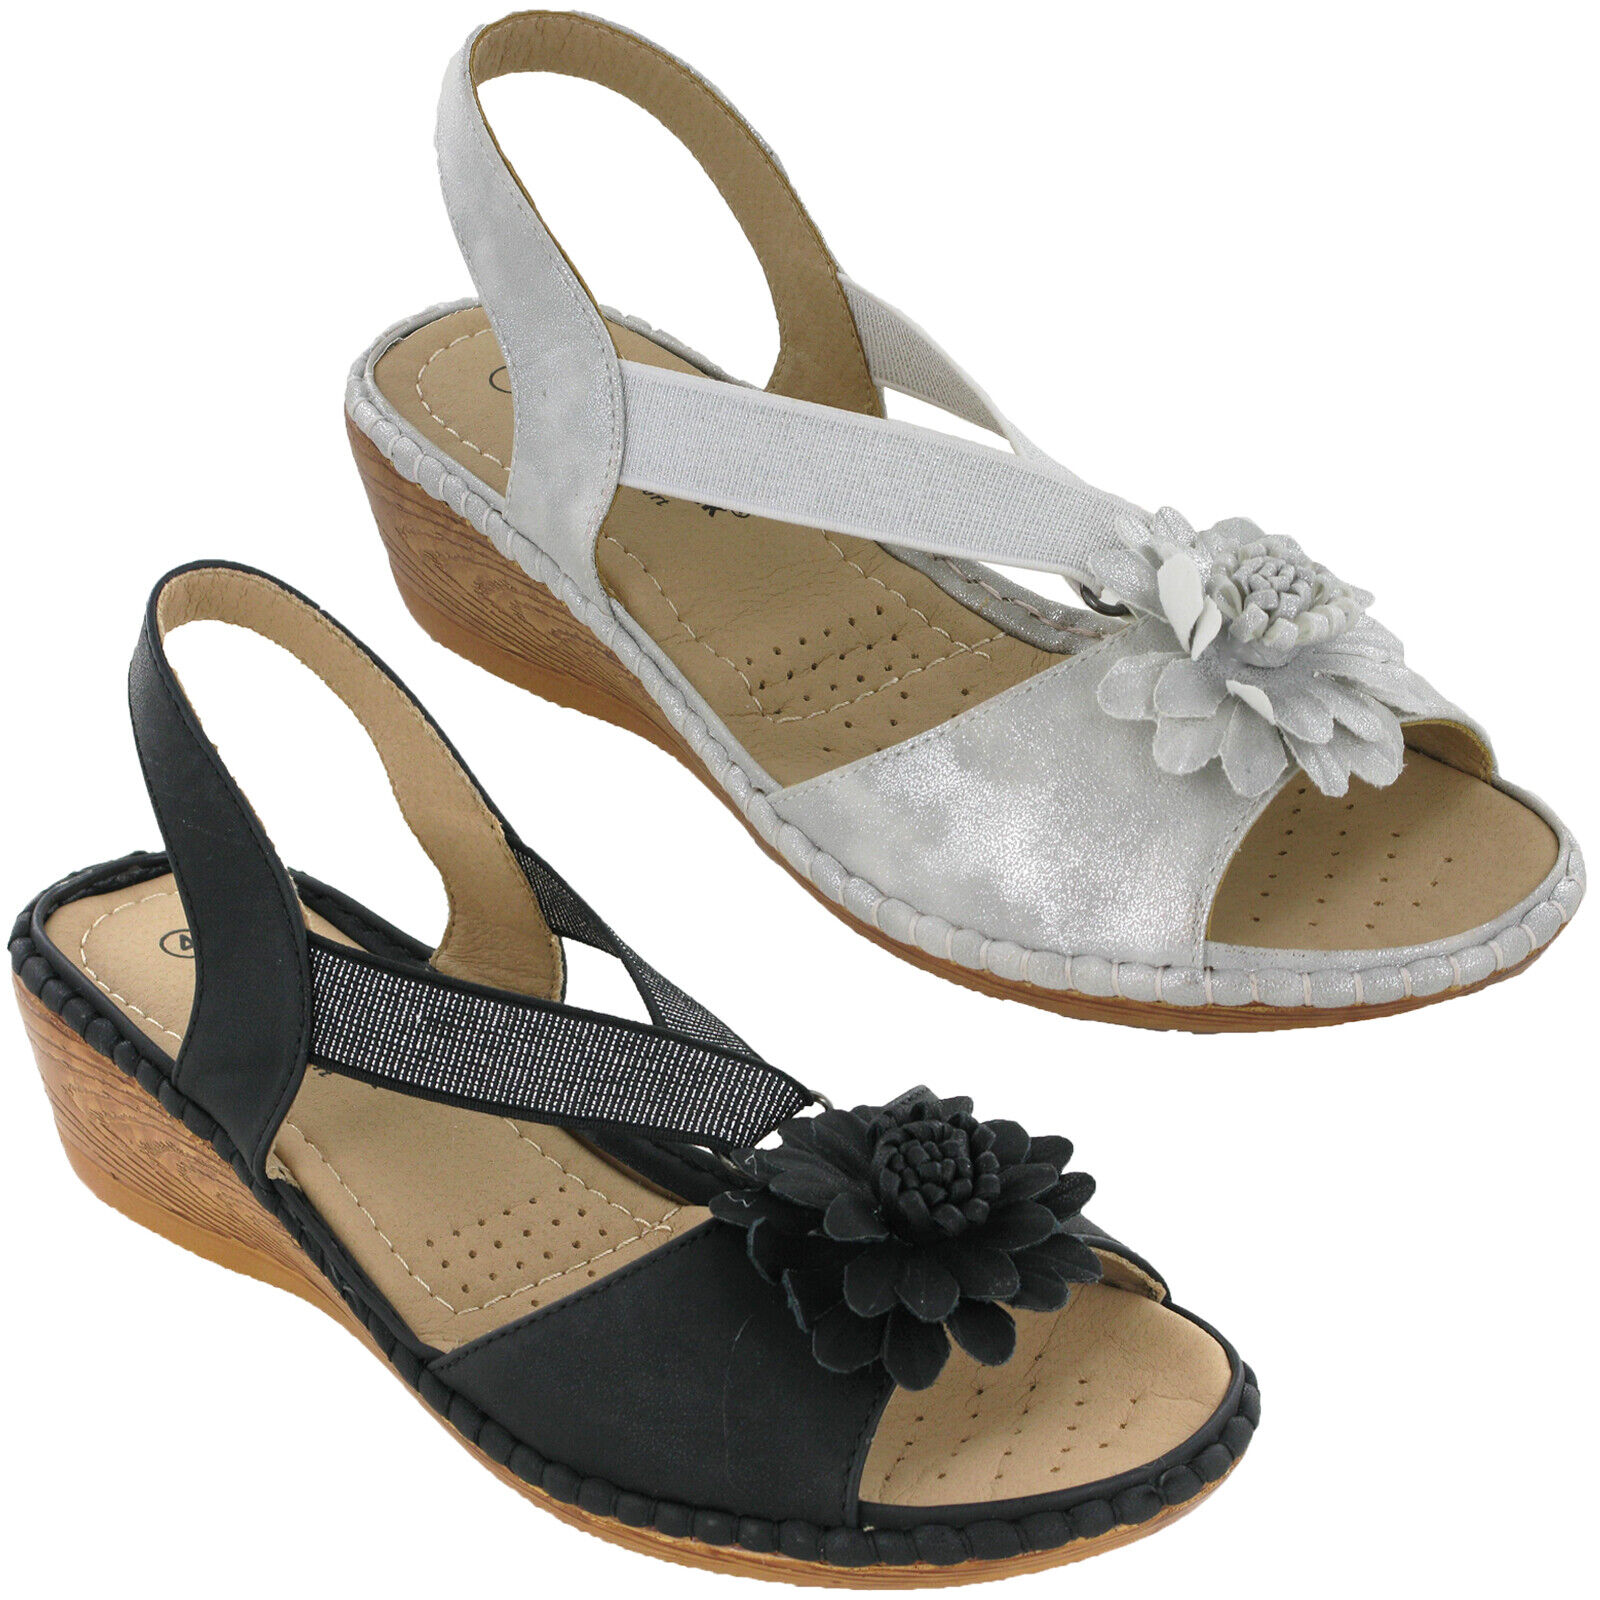 Details about Cushion Walk Slingback Elasticated Sandals Wedge Soft Summer Cushioned Comfort